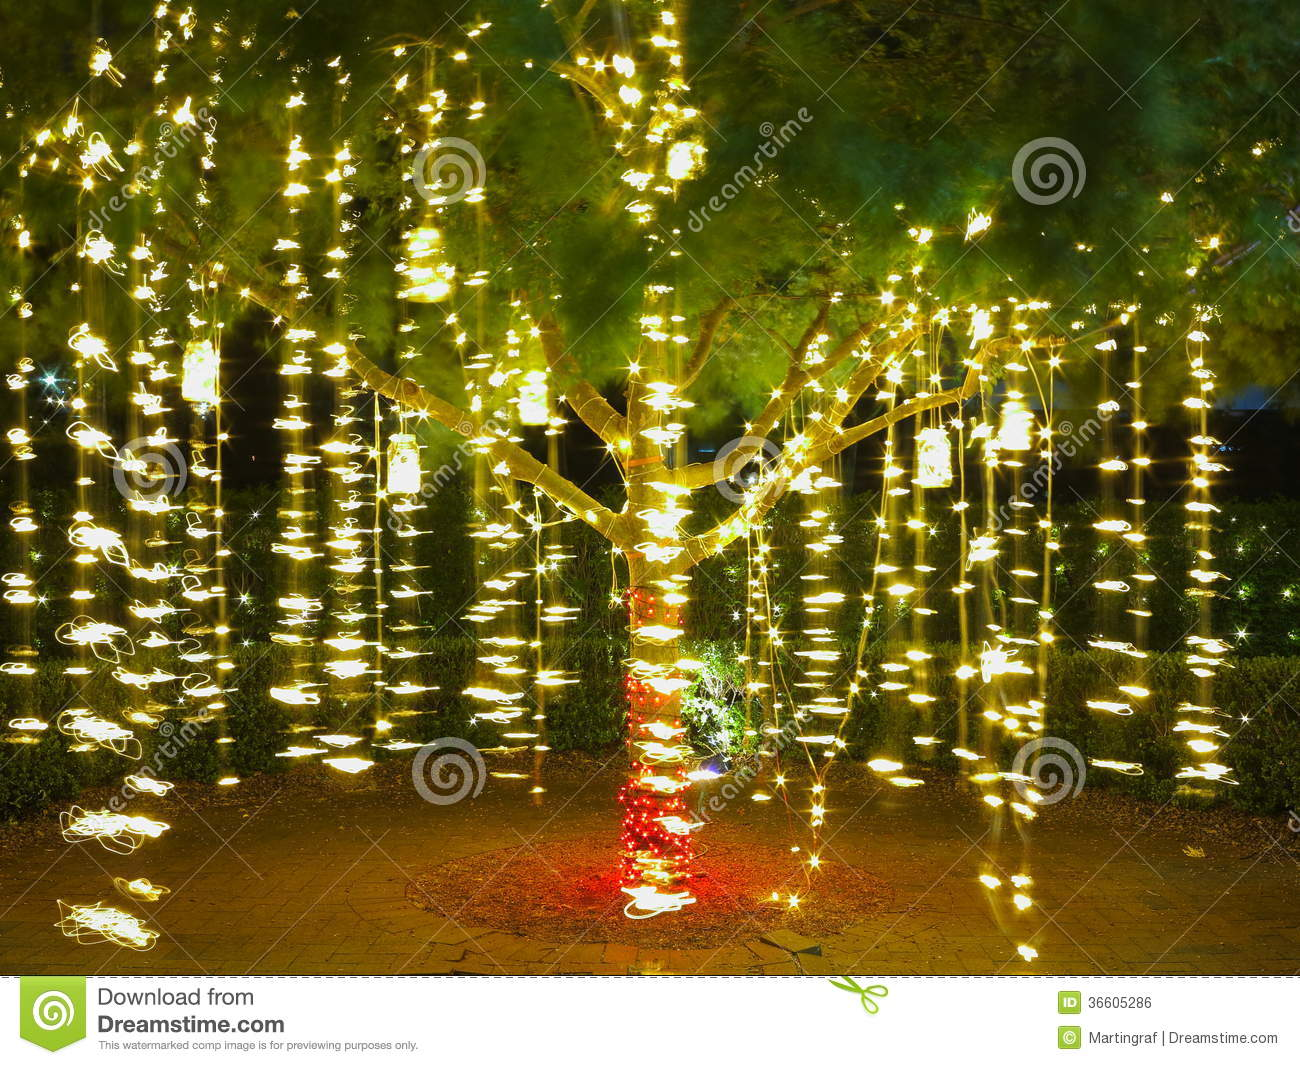 Long Hanging String Lights : Holiday Lights In Tree / Summer Night Royalty Free Stock Image - Image: 36605286